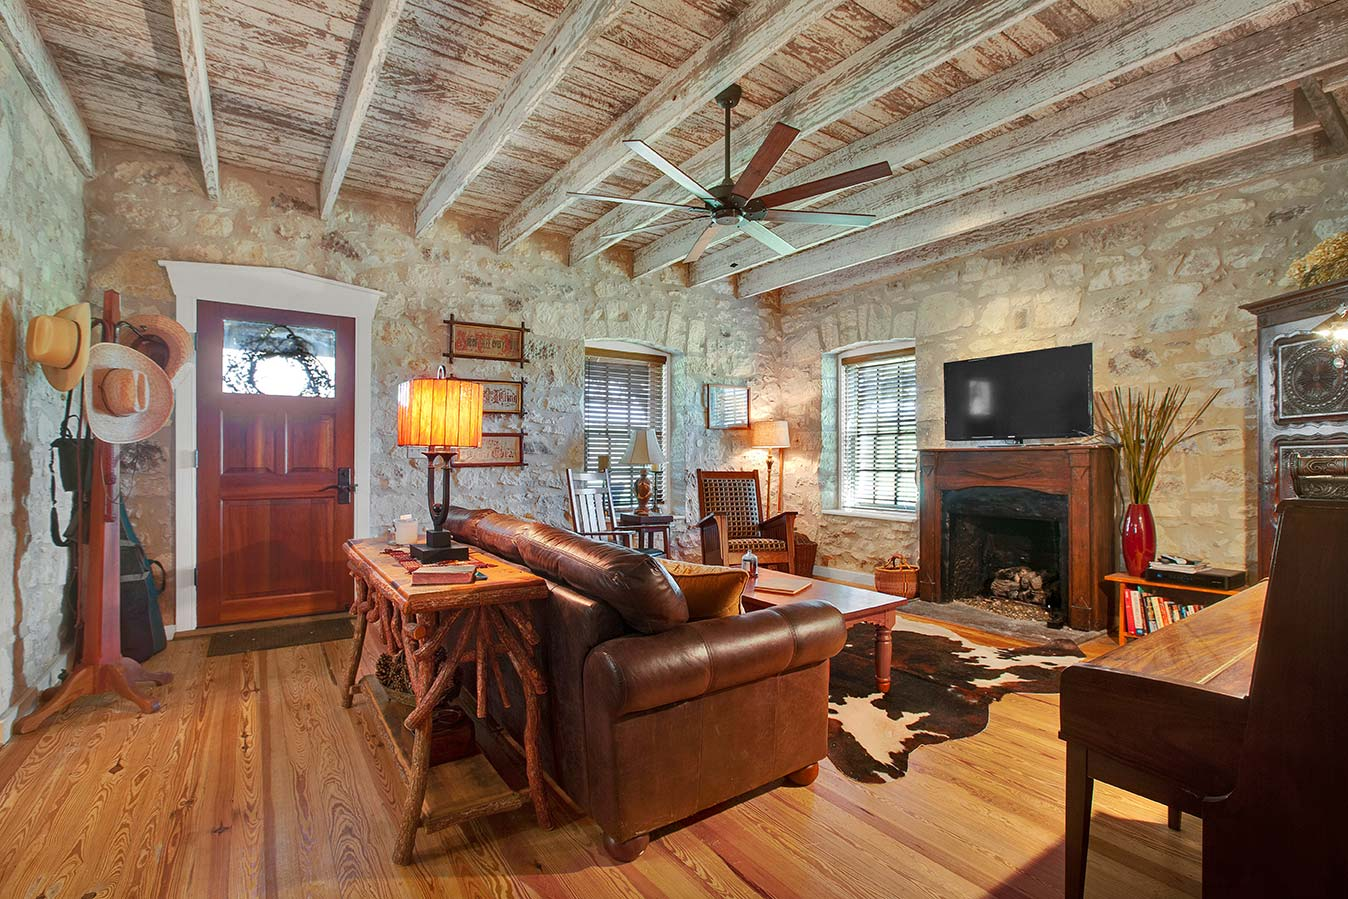 fredericksburg-realty-squaw-creek-ranch-real-estate-land-for-sale-home-house-historic-11.jpg